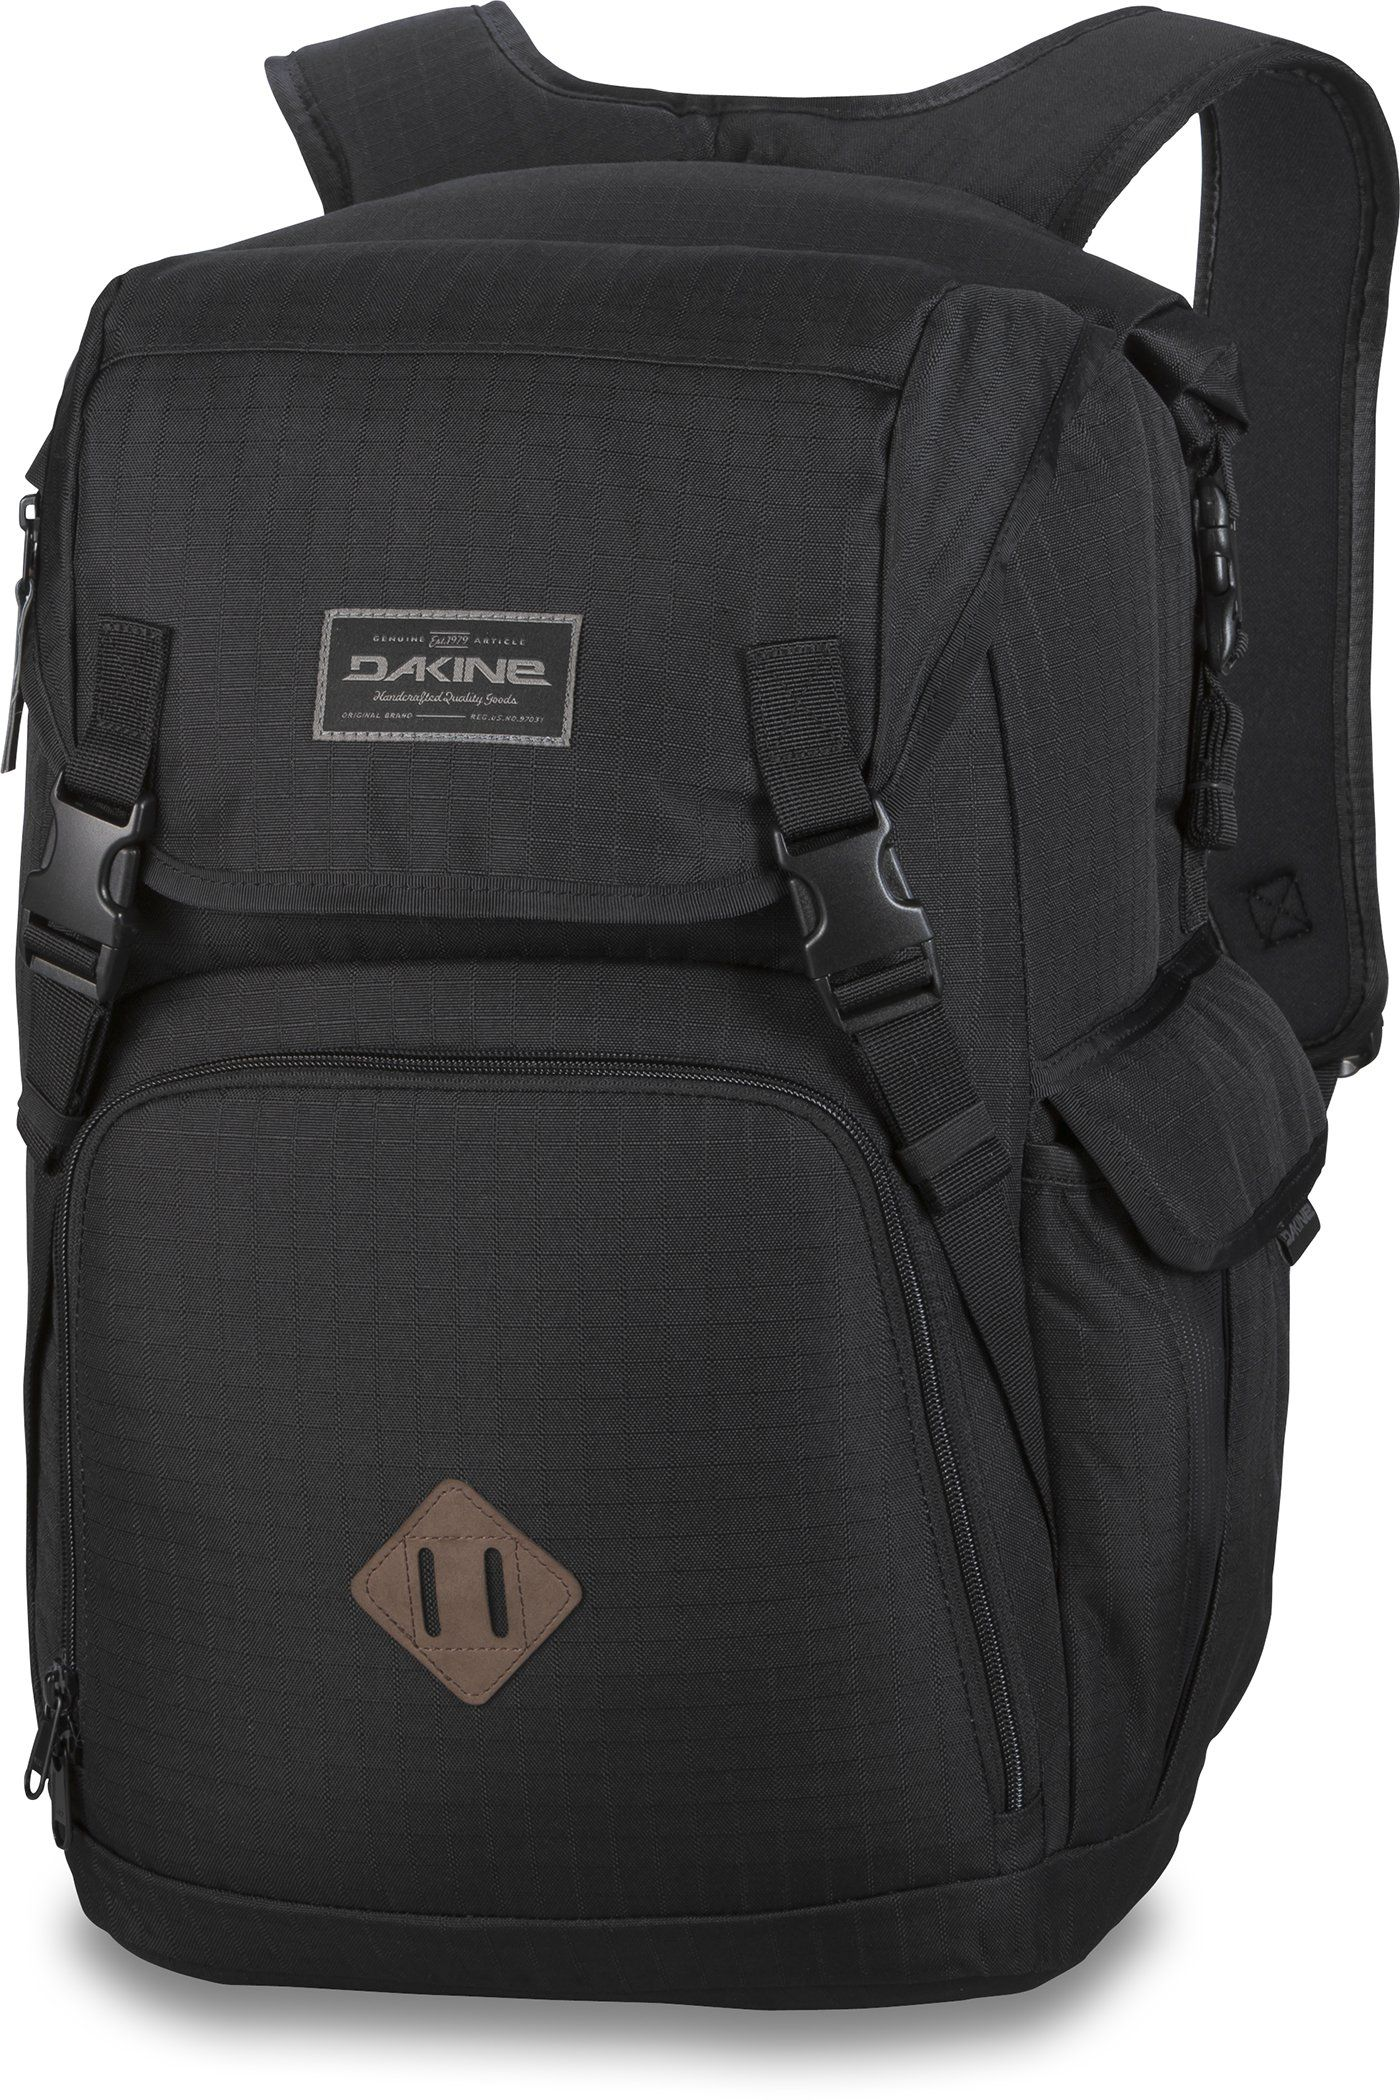 0fa9111b85 Dakine Point Wet Dry Backpack 29L Backpack Black One Size